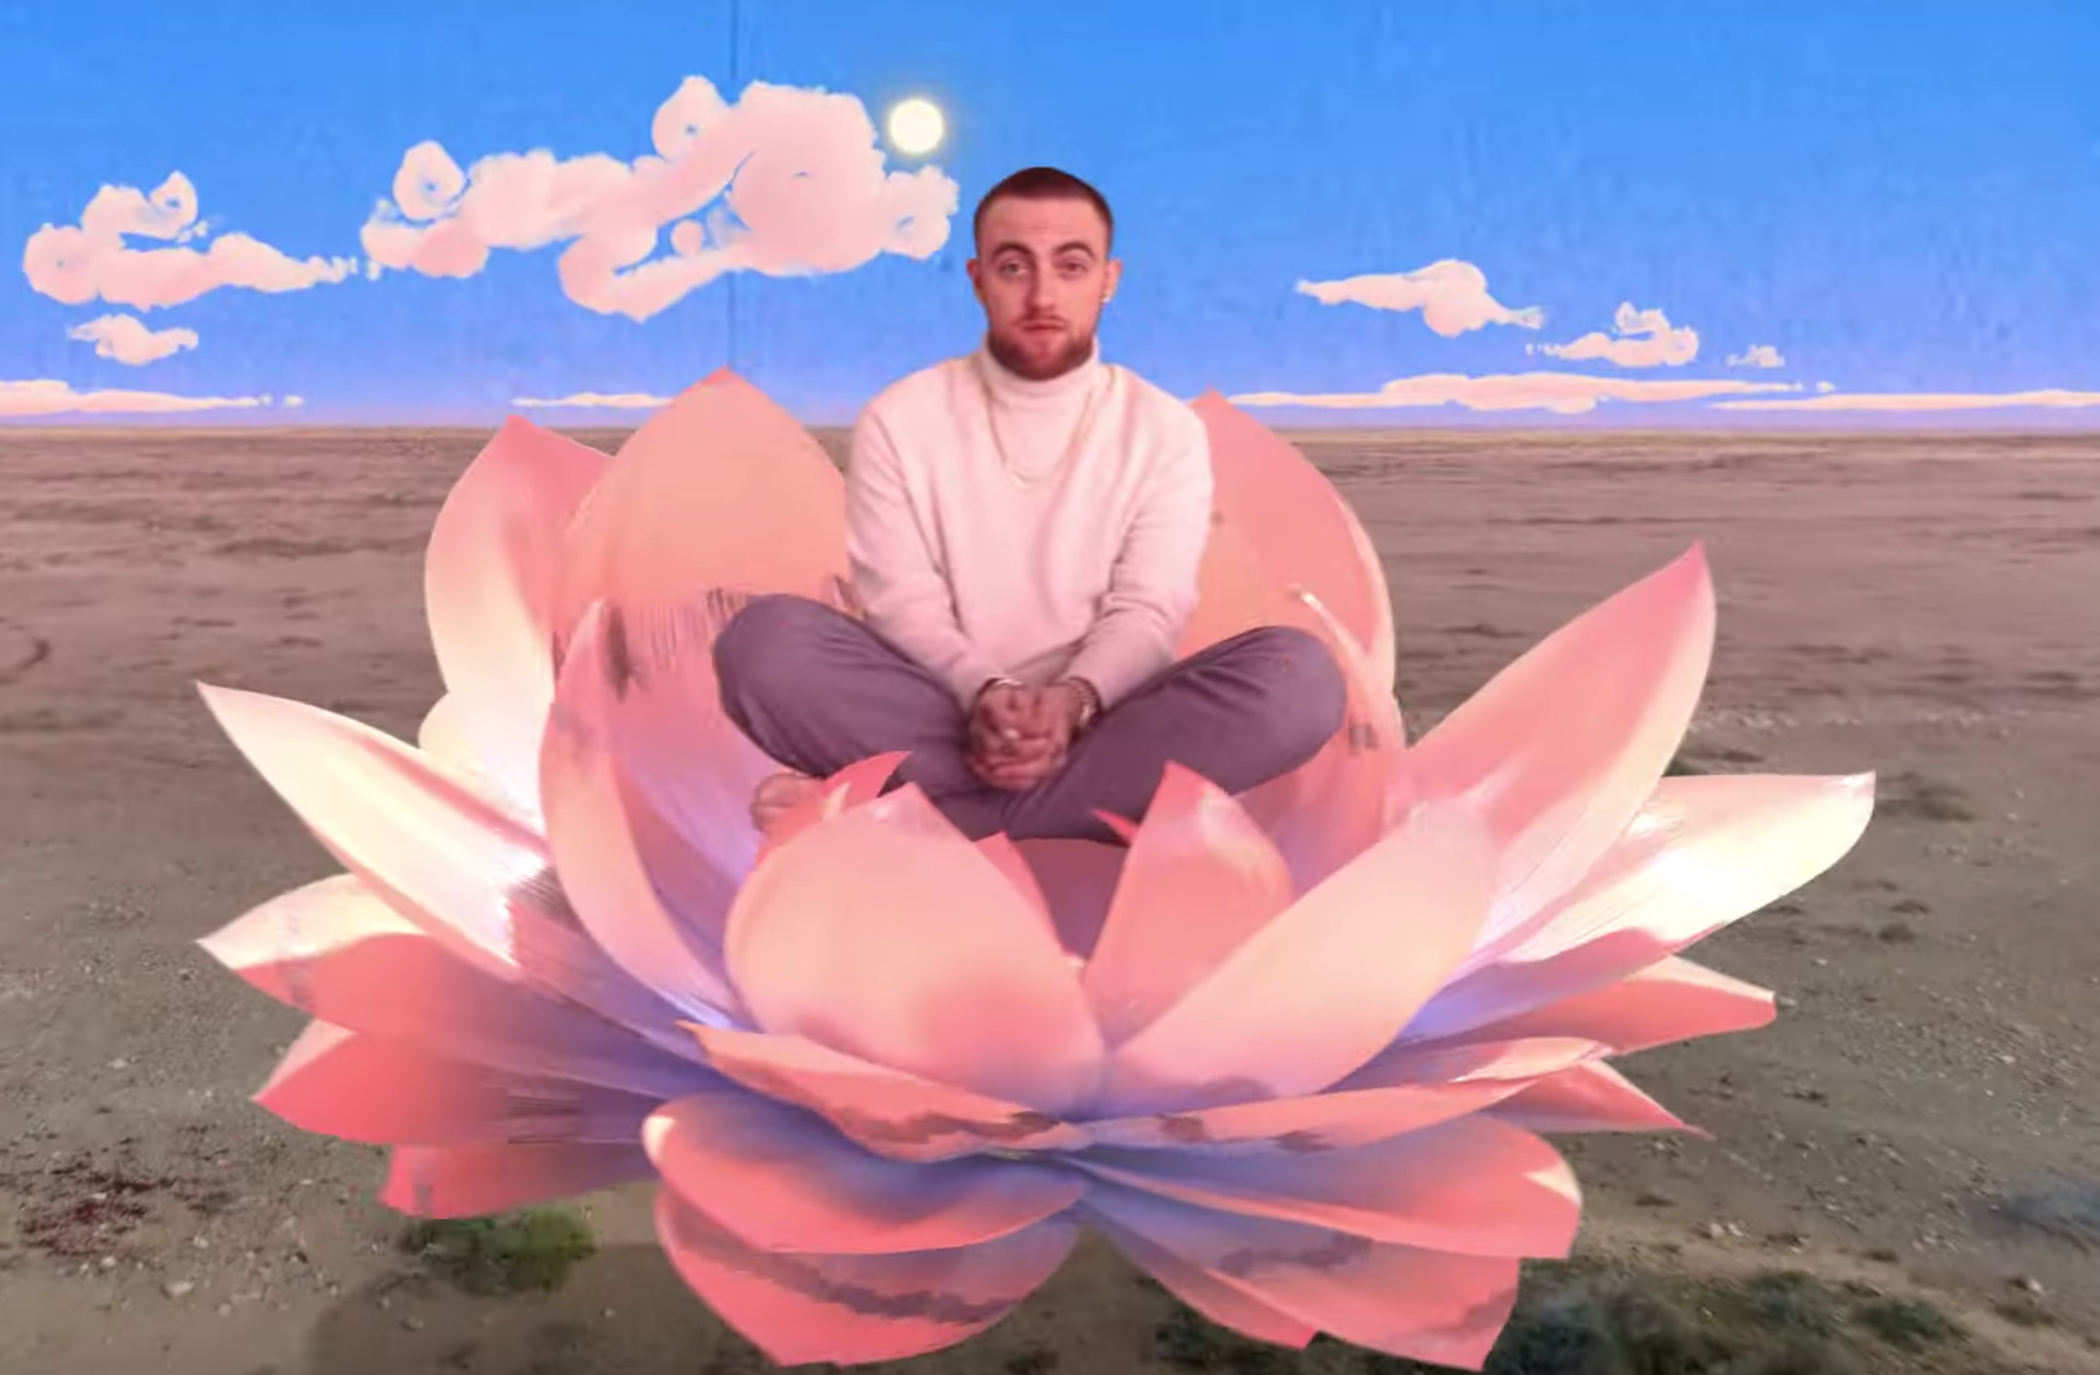 Mac Miller S Good News Watch Video For Song From Circles